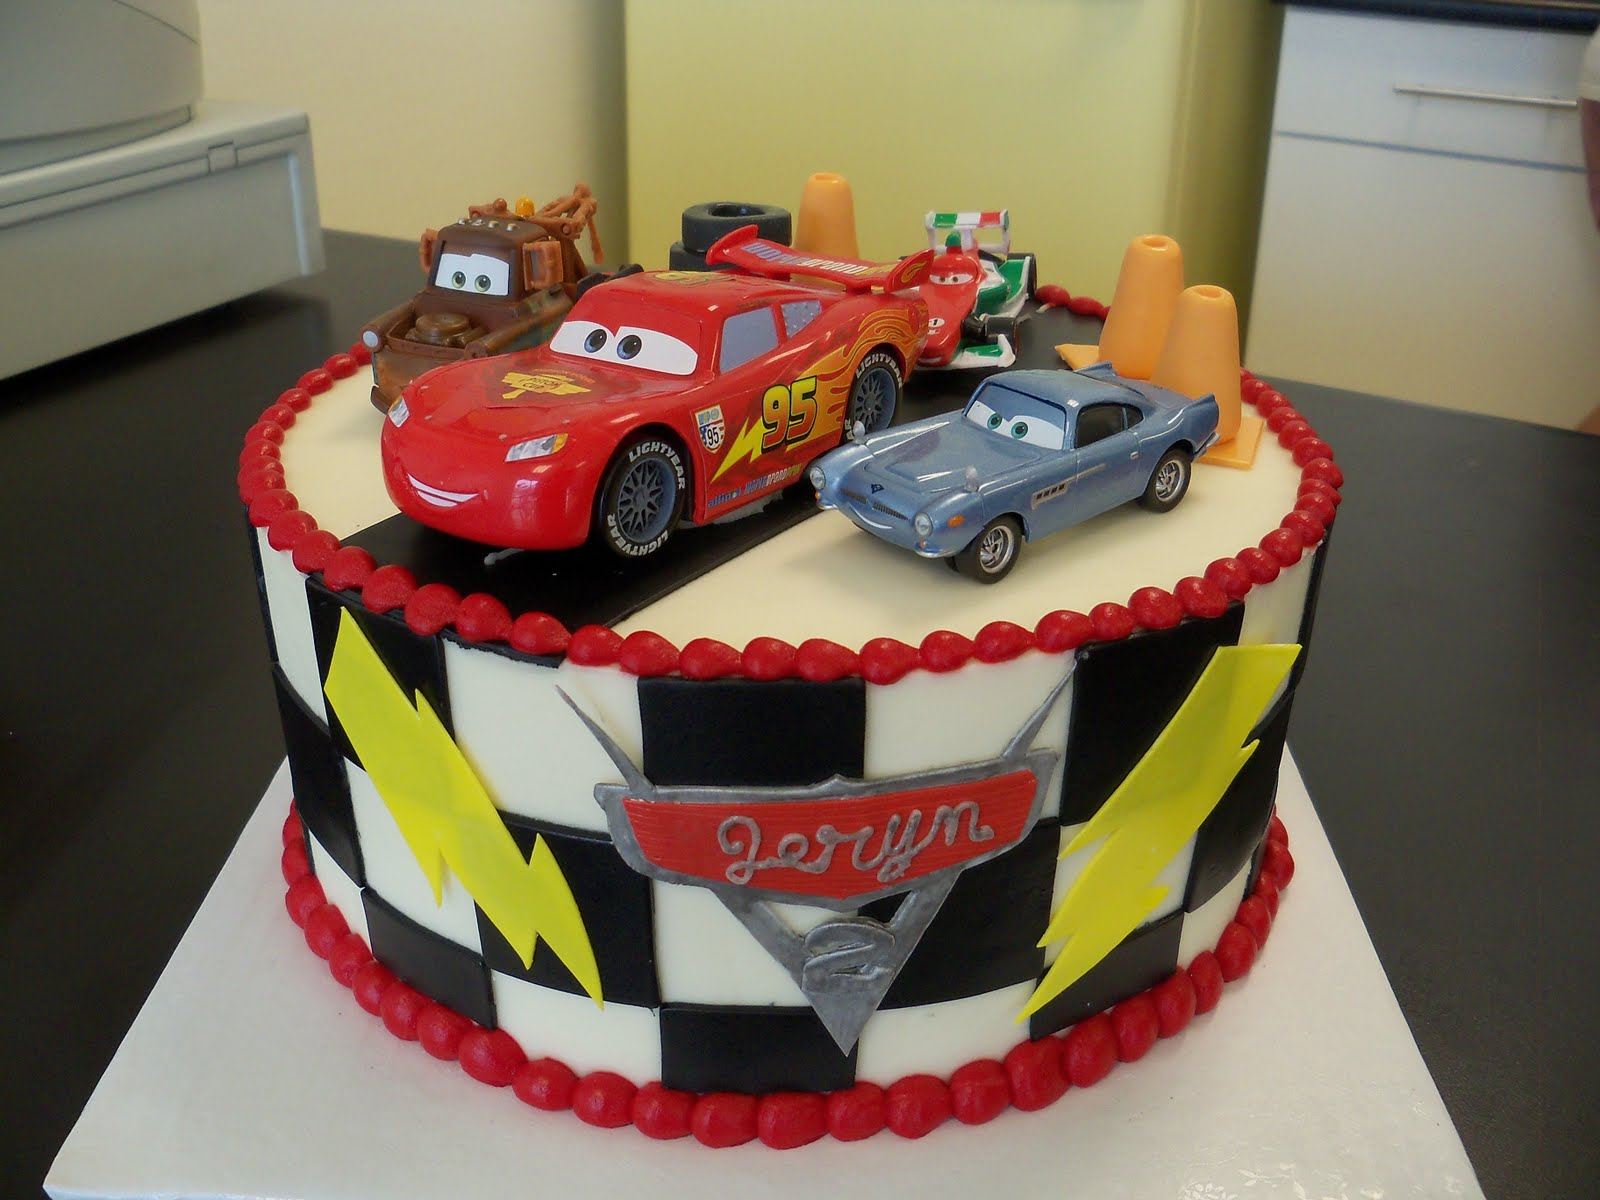 Cake Designs With Cars : Cars Cakes   Decoration Ideas Little Birthday Cakes